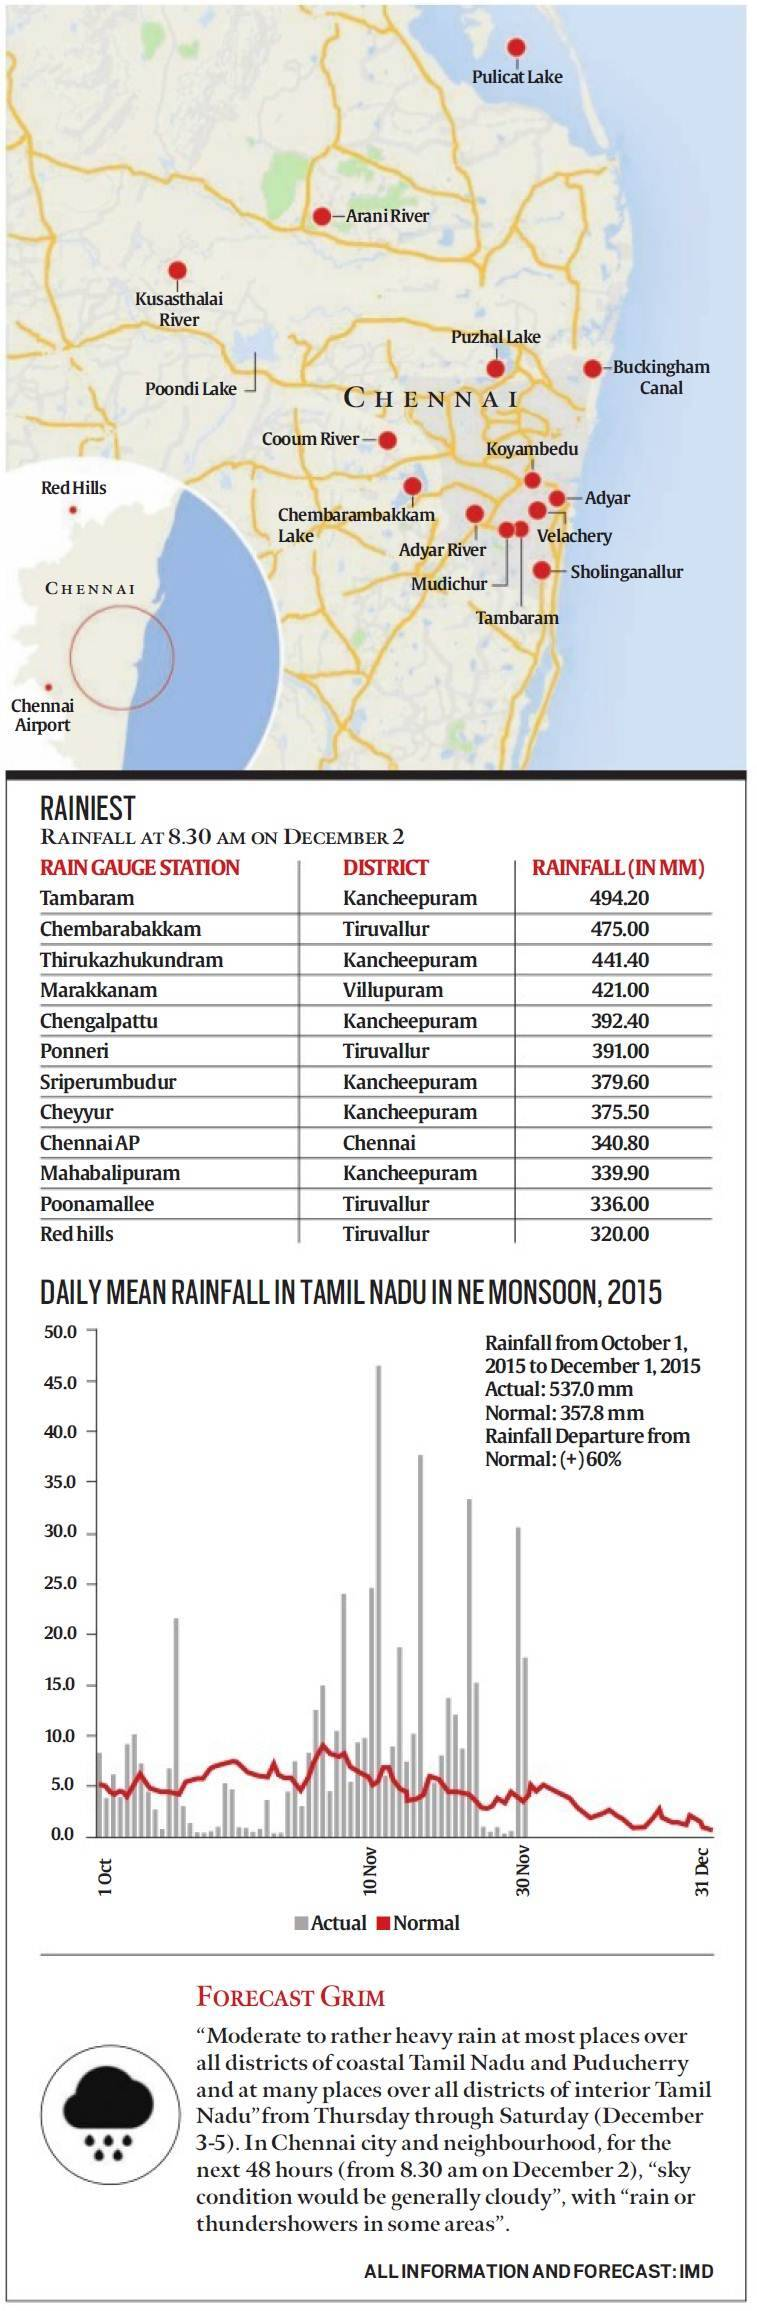 chennai floods, why chennai has floods